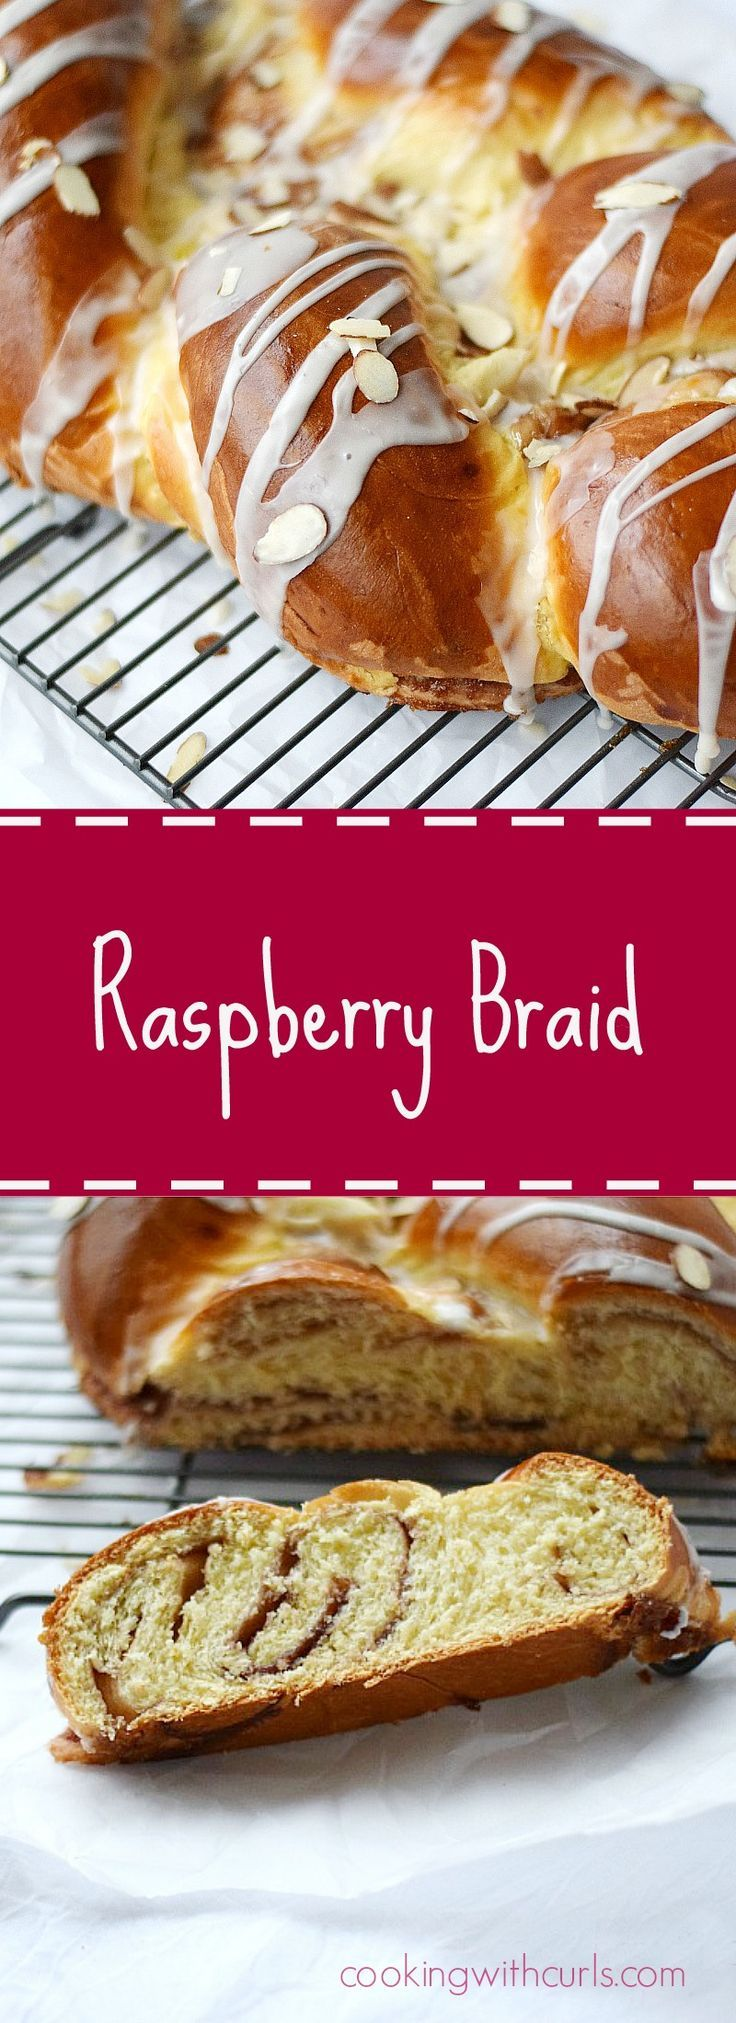 Raspberry Braid for the perfect breakfast or brunch treat | http://cookingwithcurls.com